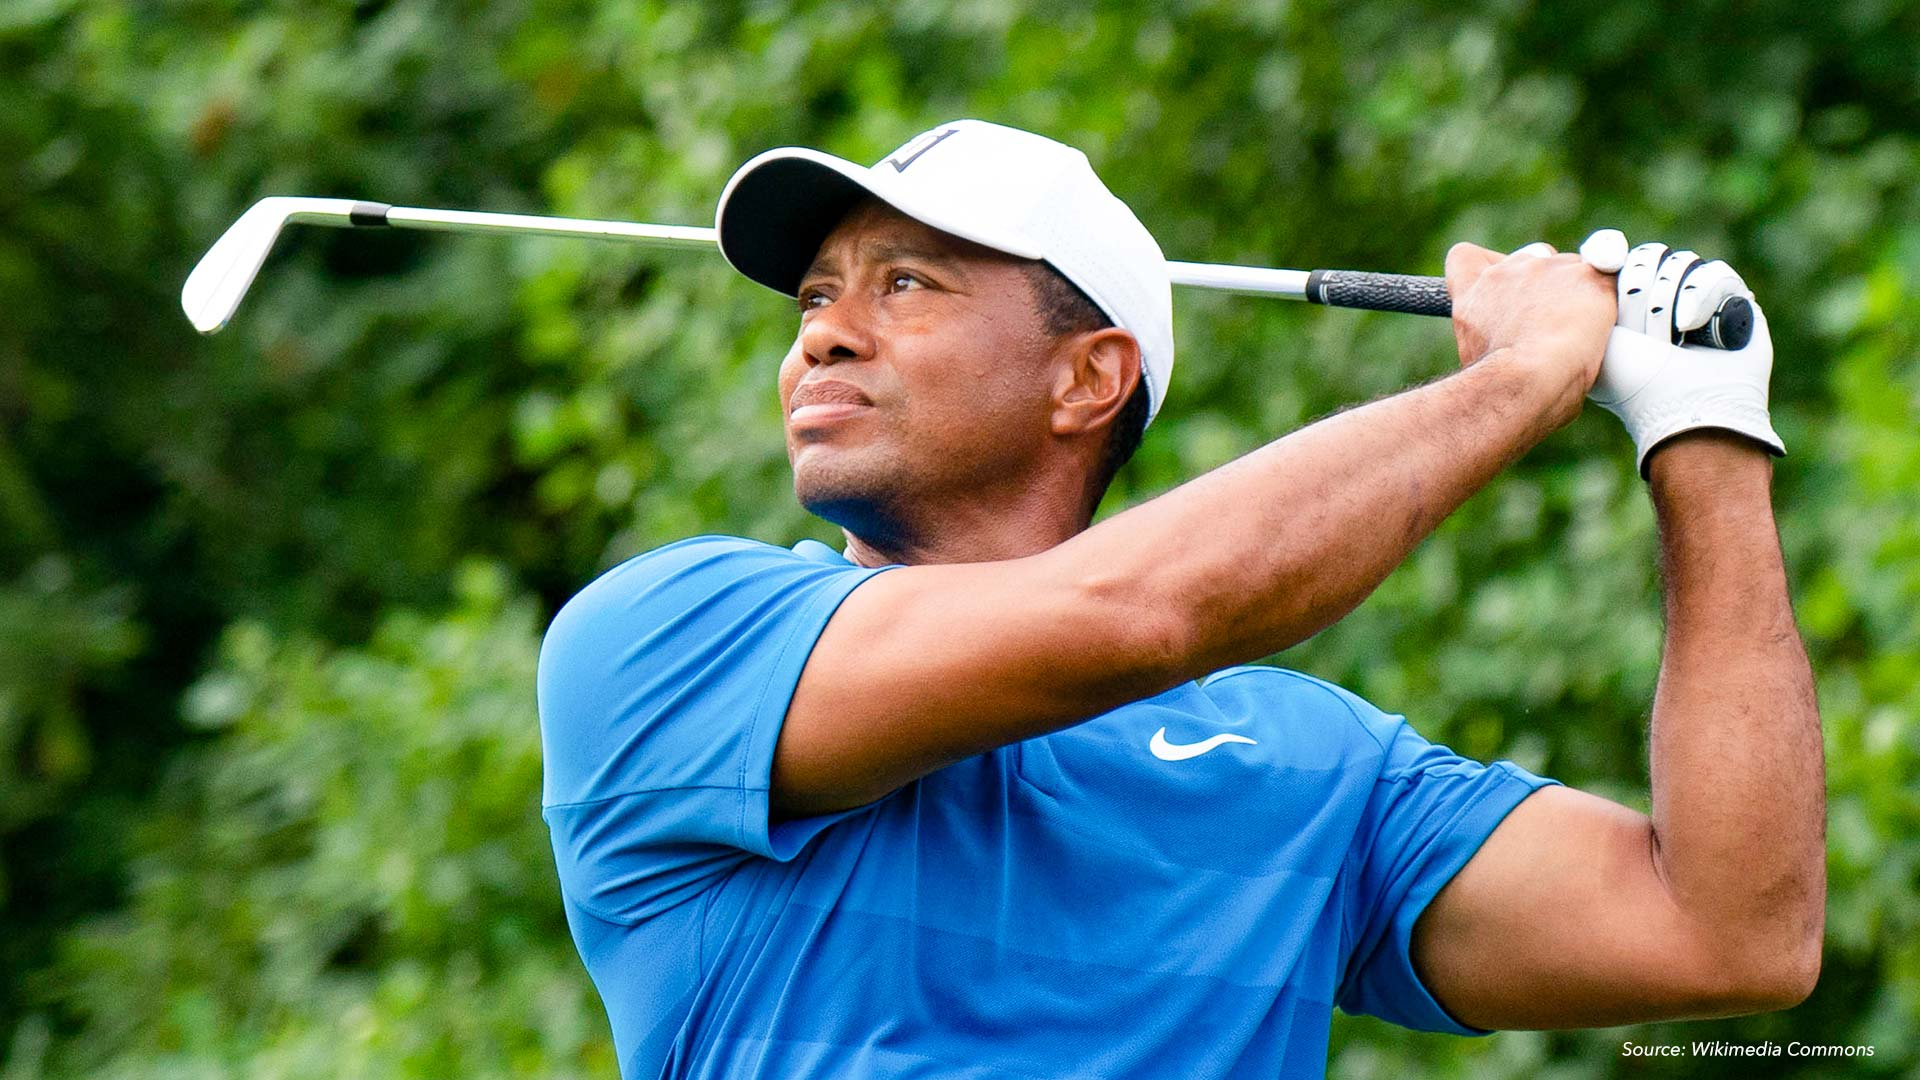 What Tiger Woods' Injuries Mean for His Golf Career